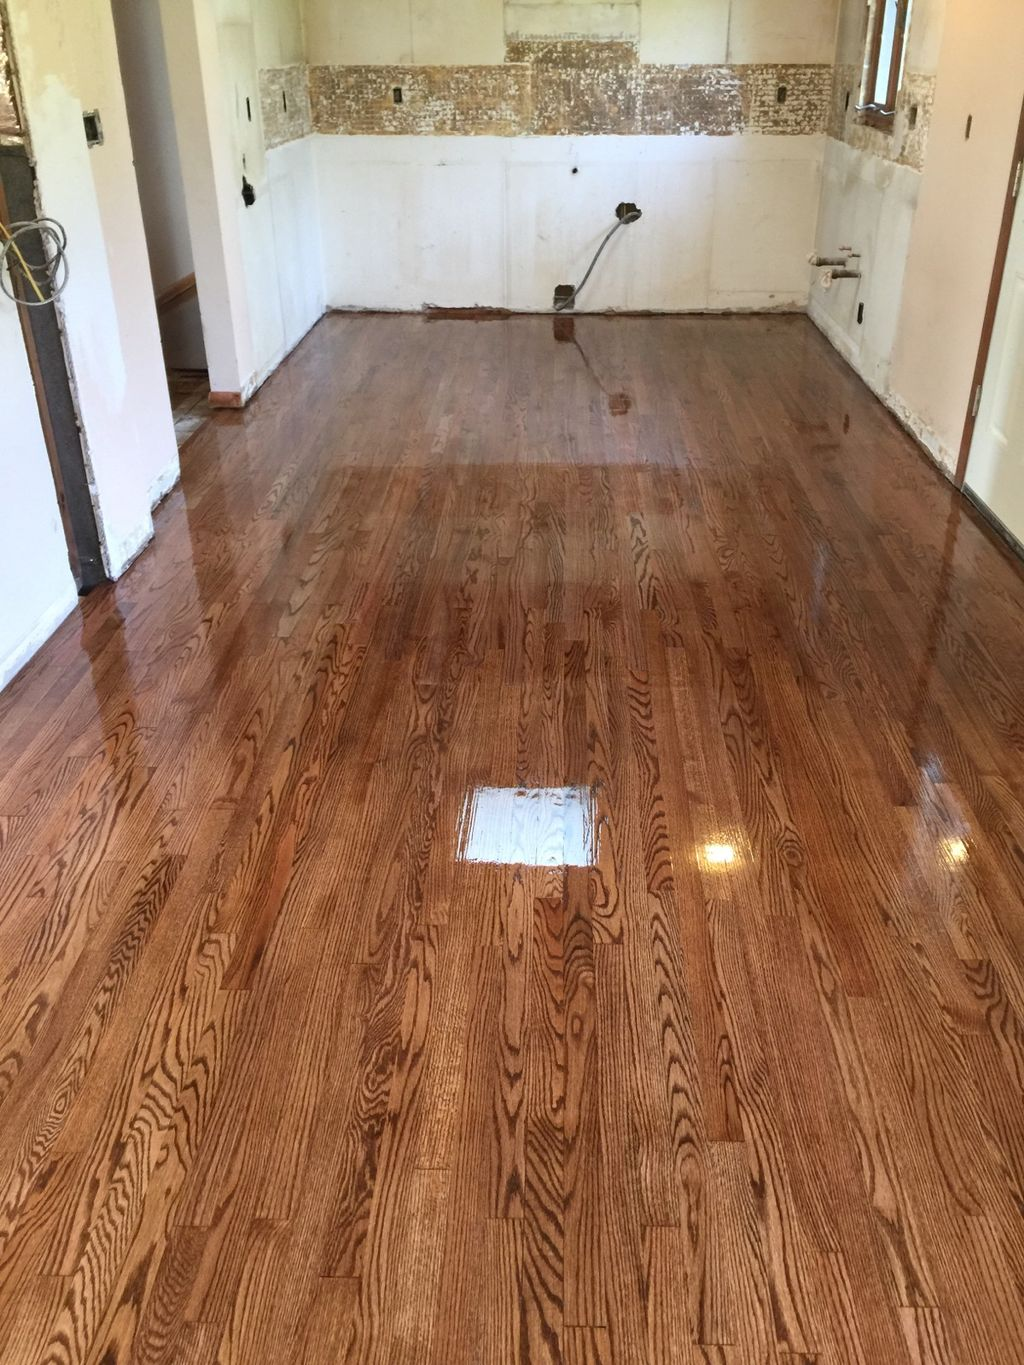 Kohl Floor sanding and refinishing